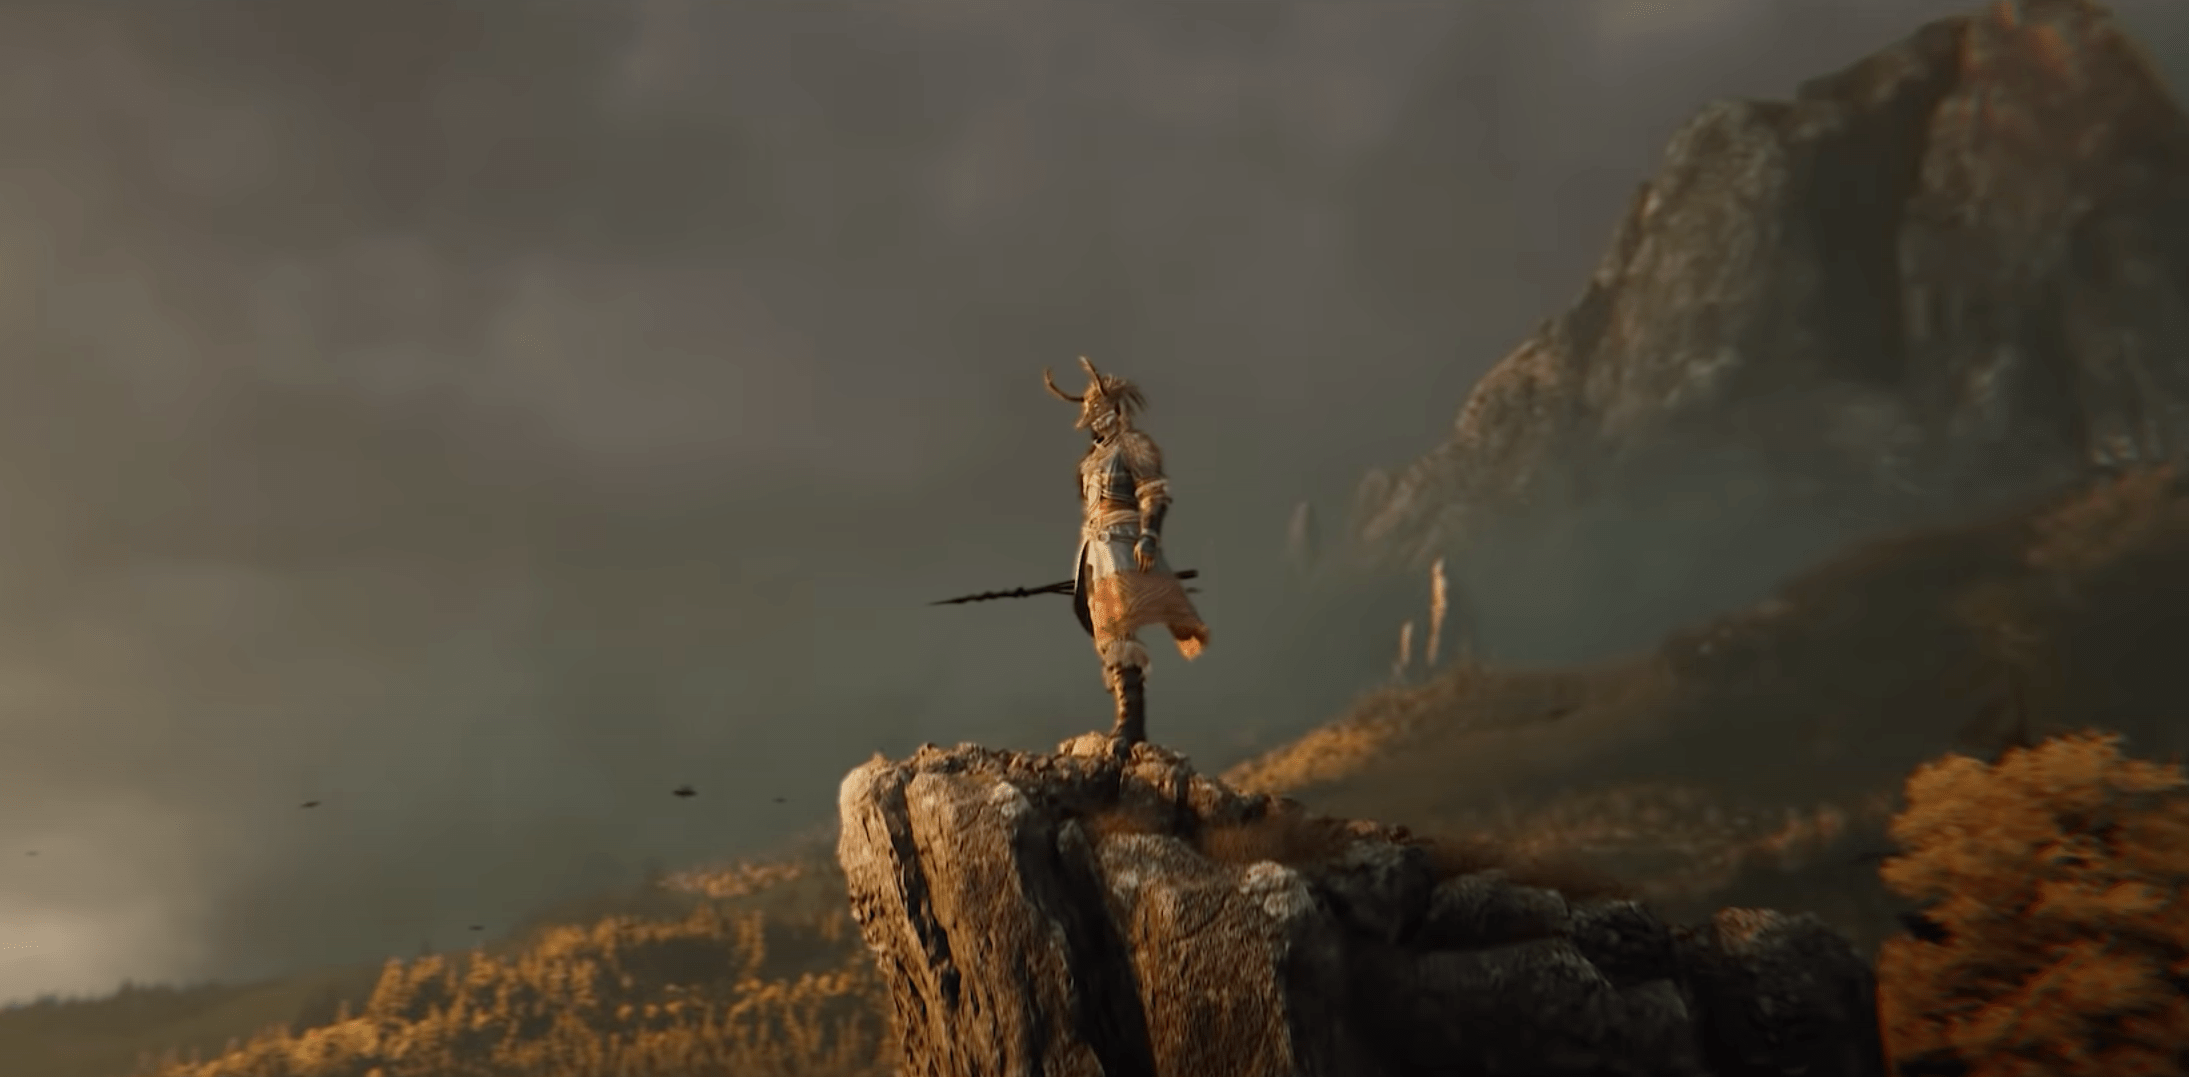 Greedfall is an impressive action RPG with loads to do